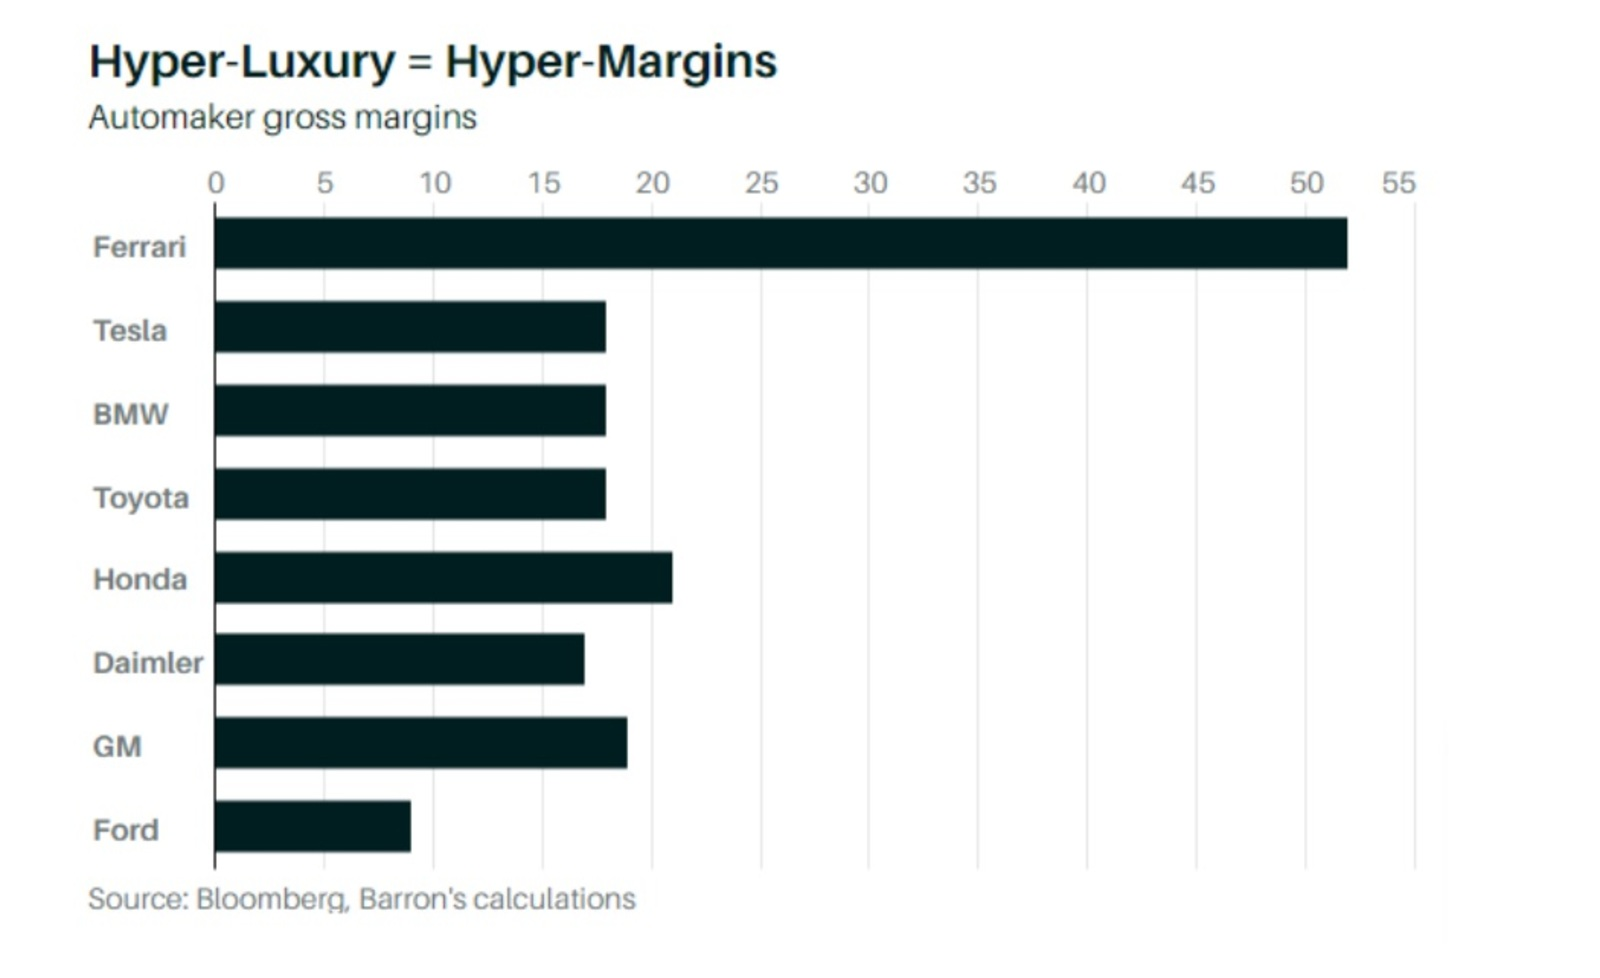 Hyper Luxury = Hyper Margins